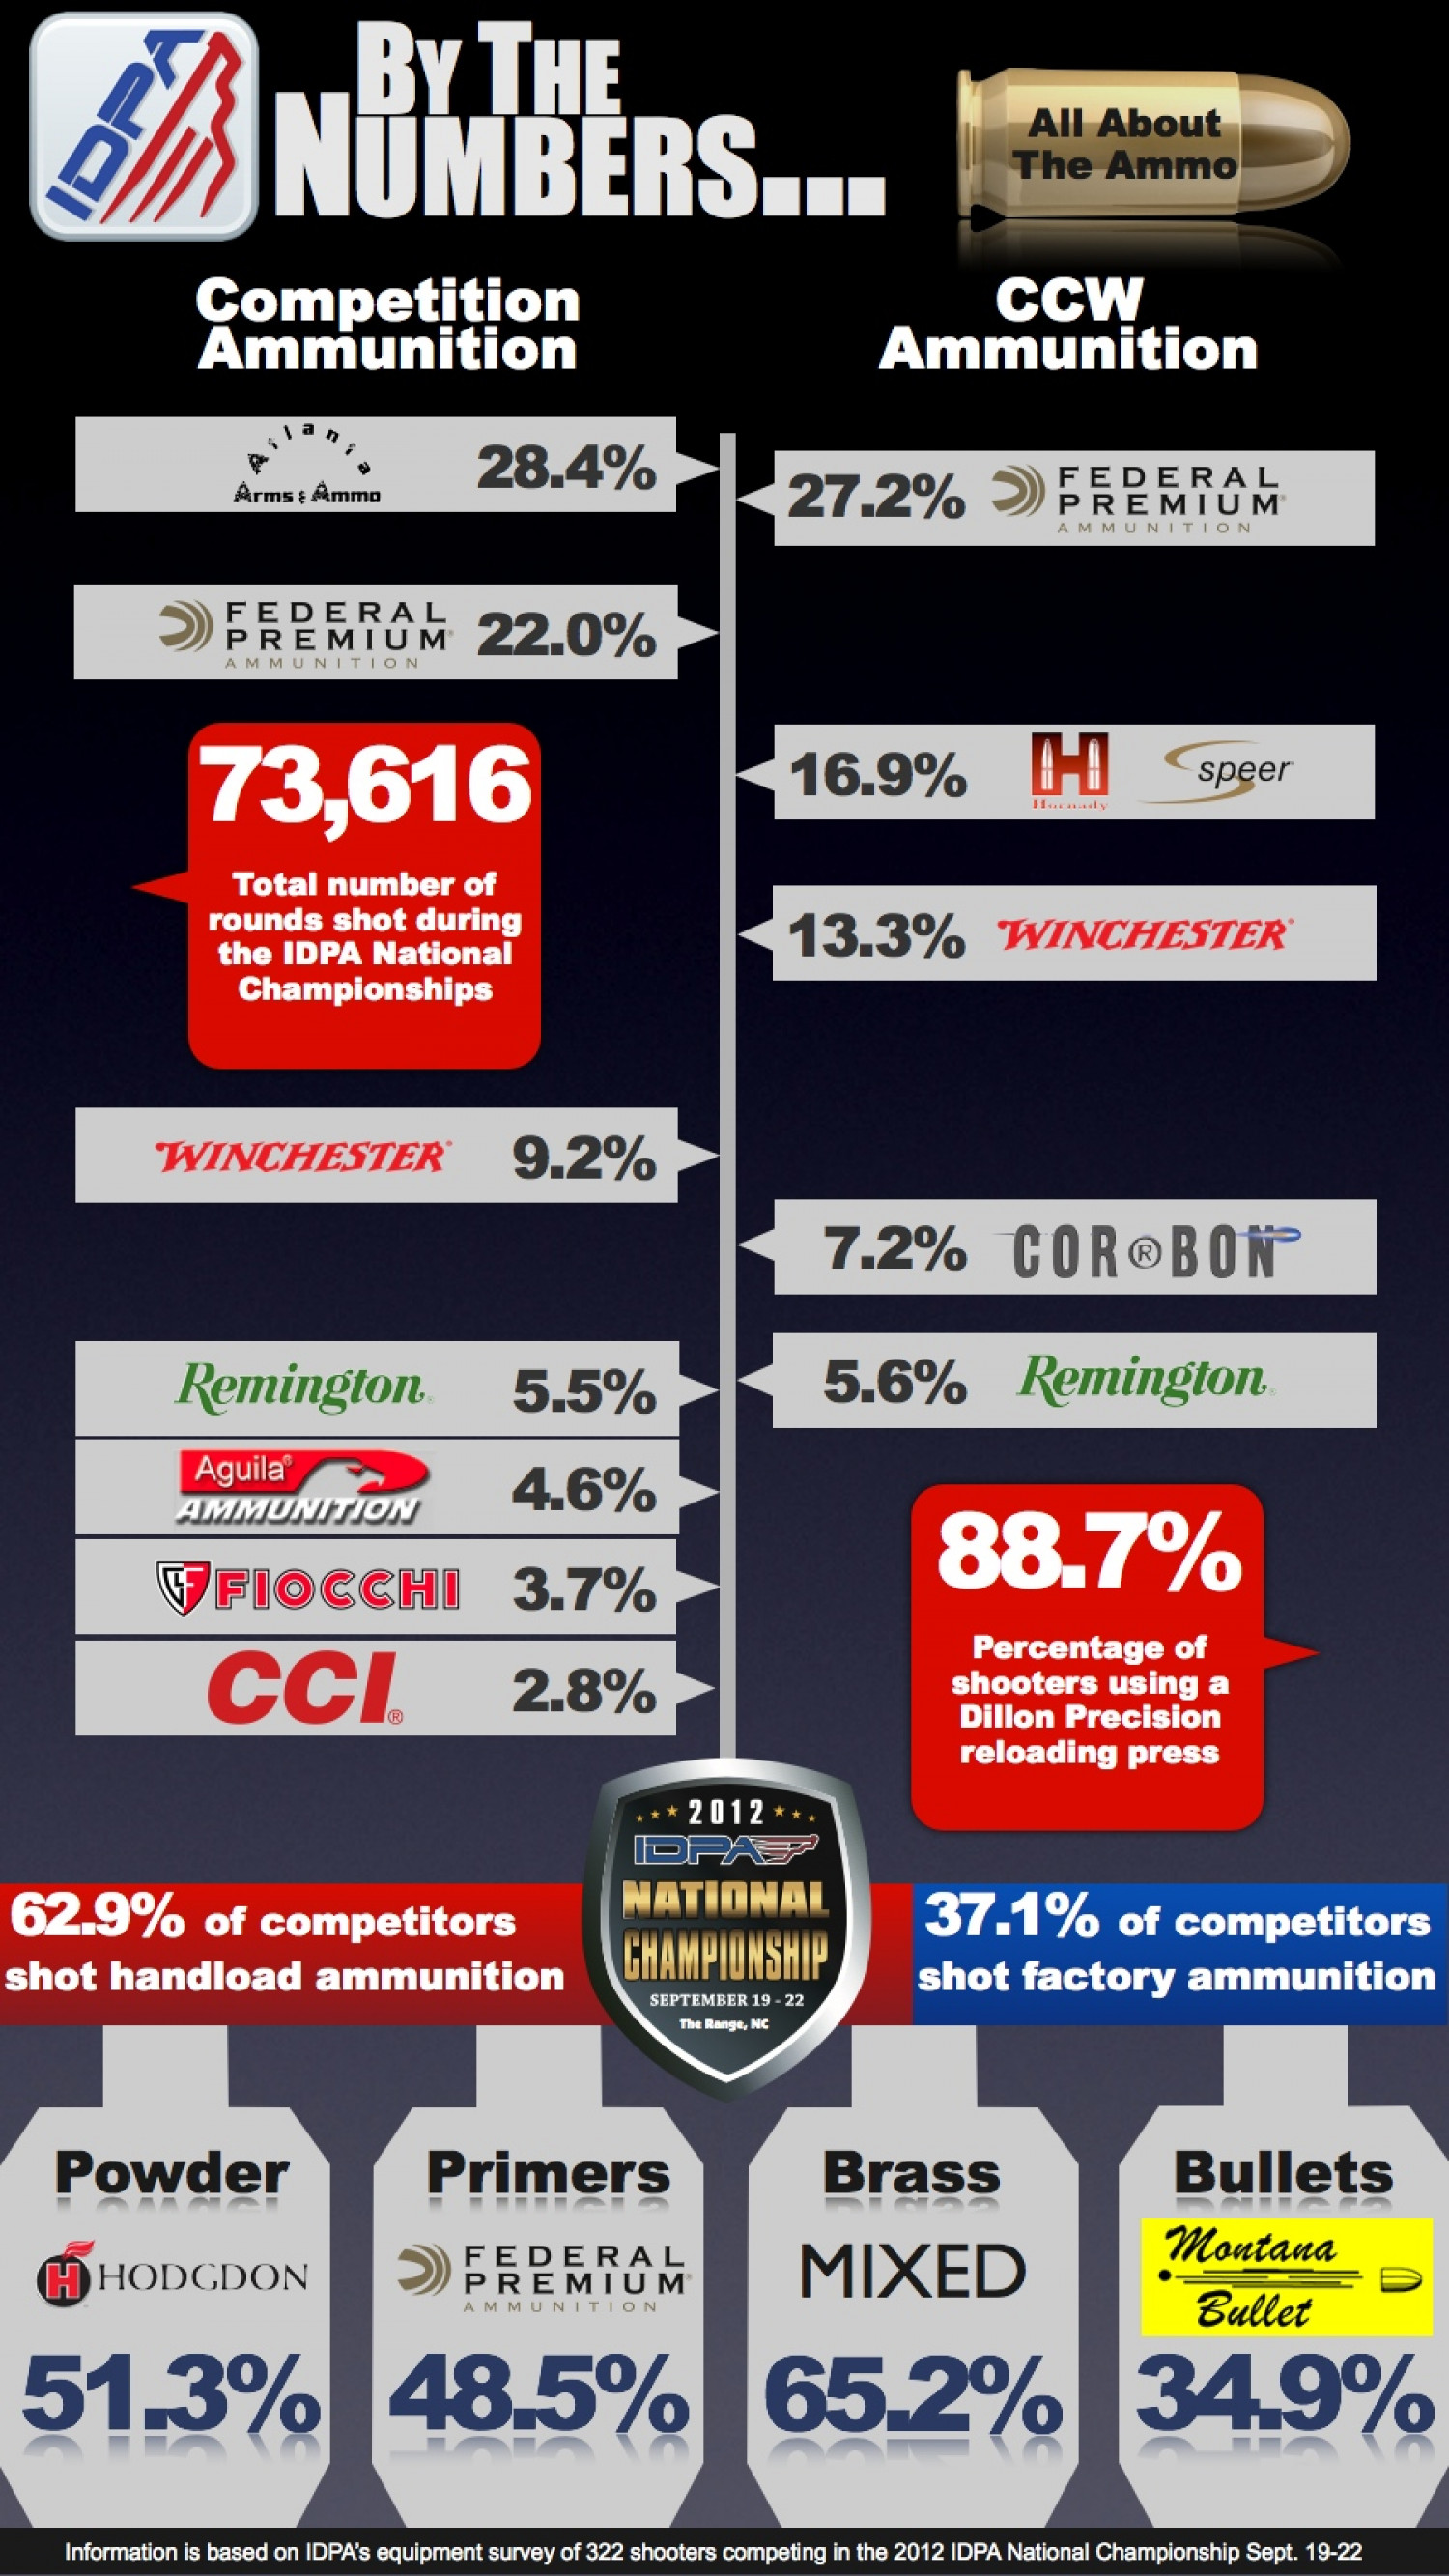 Ammo and Component Brands of the 2012 IDPA National Championship Infographic